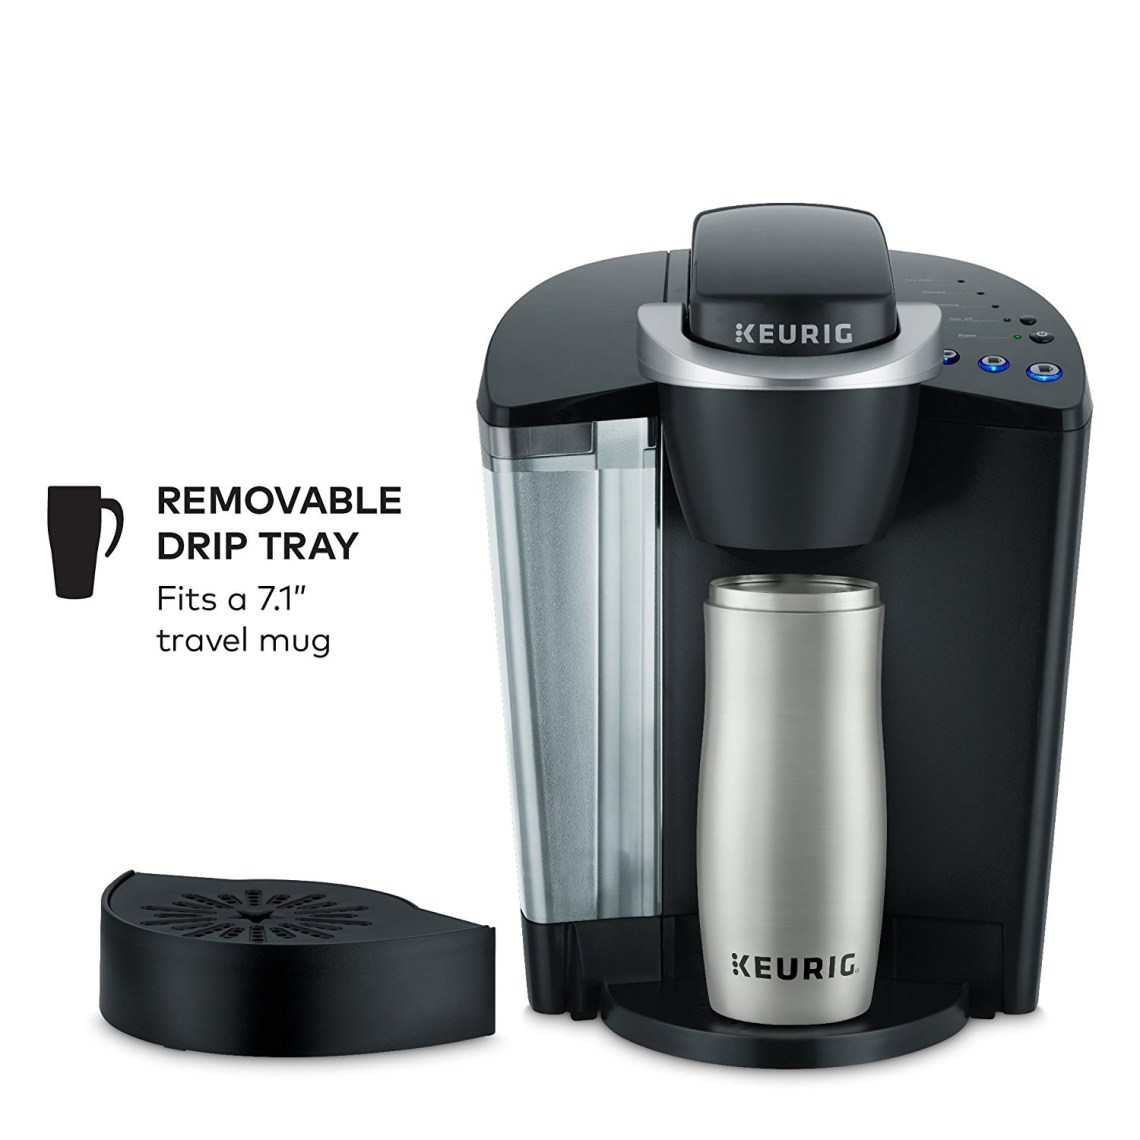 Keurig-Class-Coffee-Maker-Single-Surve2-Info-Graphics